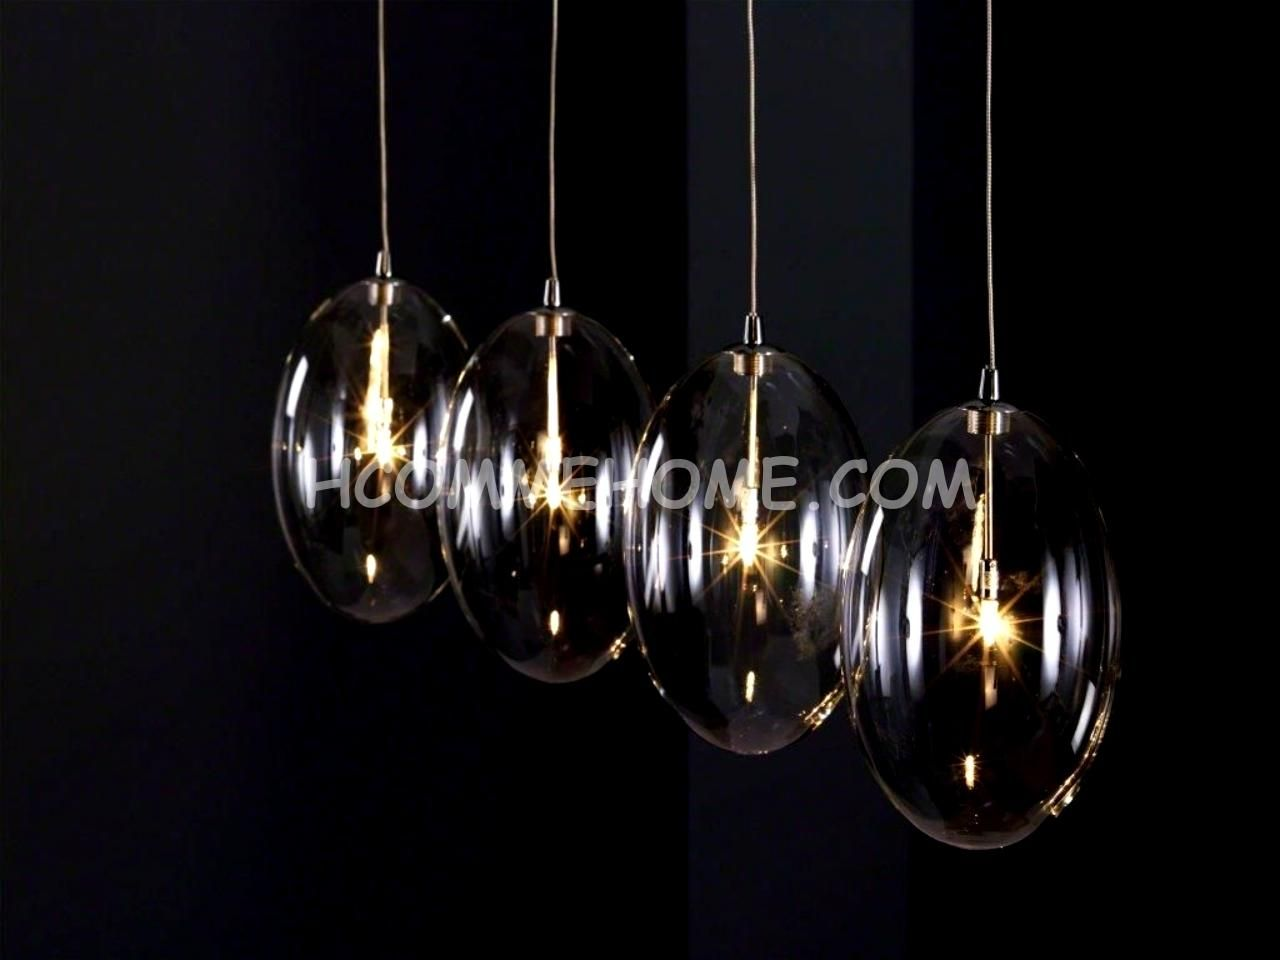 Luminaire suspension design en verre kalo luminaires for Suspension luminaire exterieur design